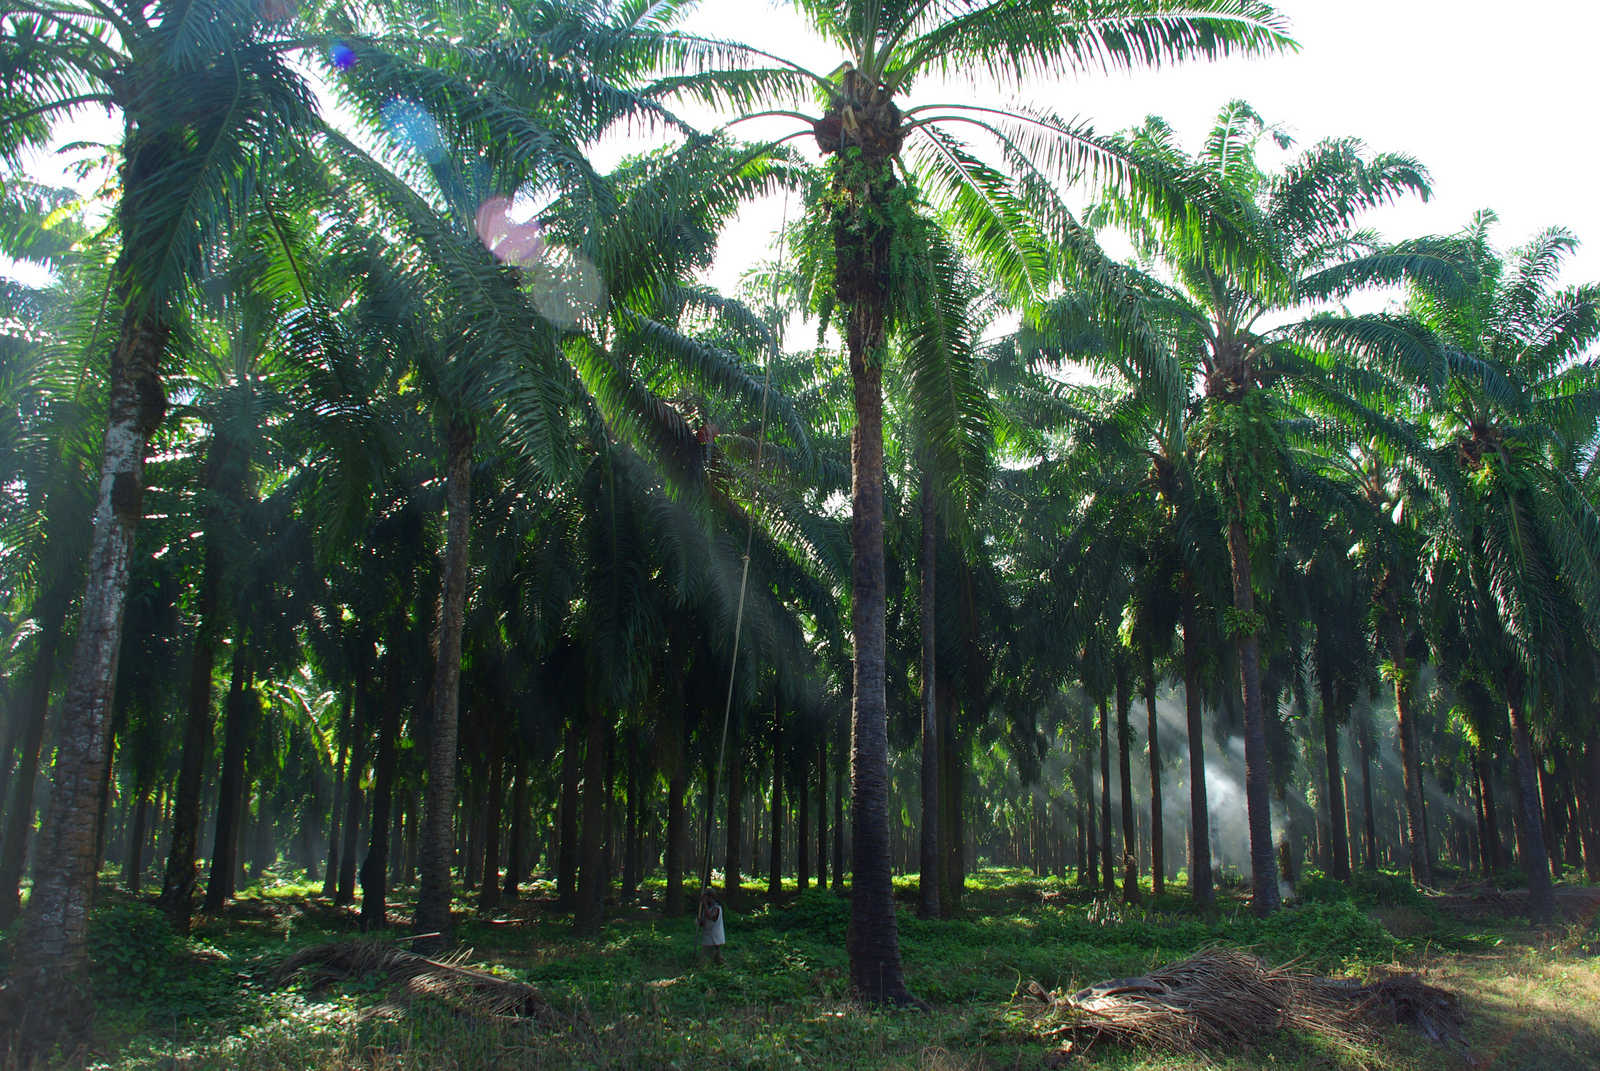 10 Companies Committed to Sourcing Sustainable Palm Oil